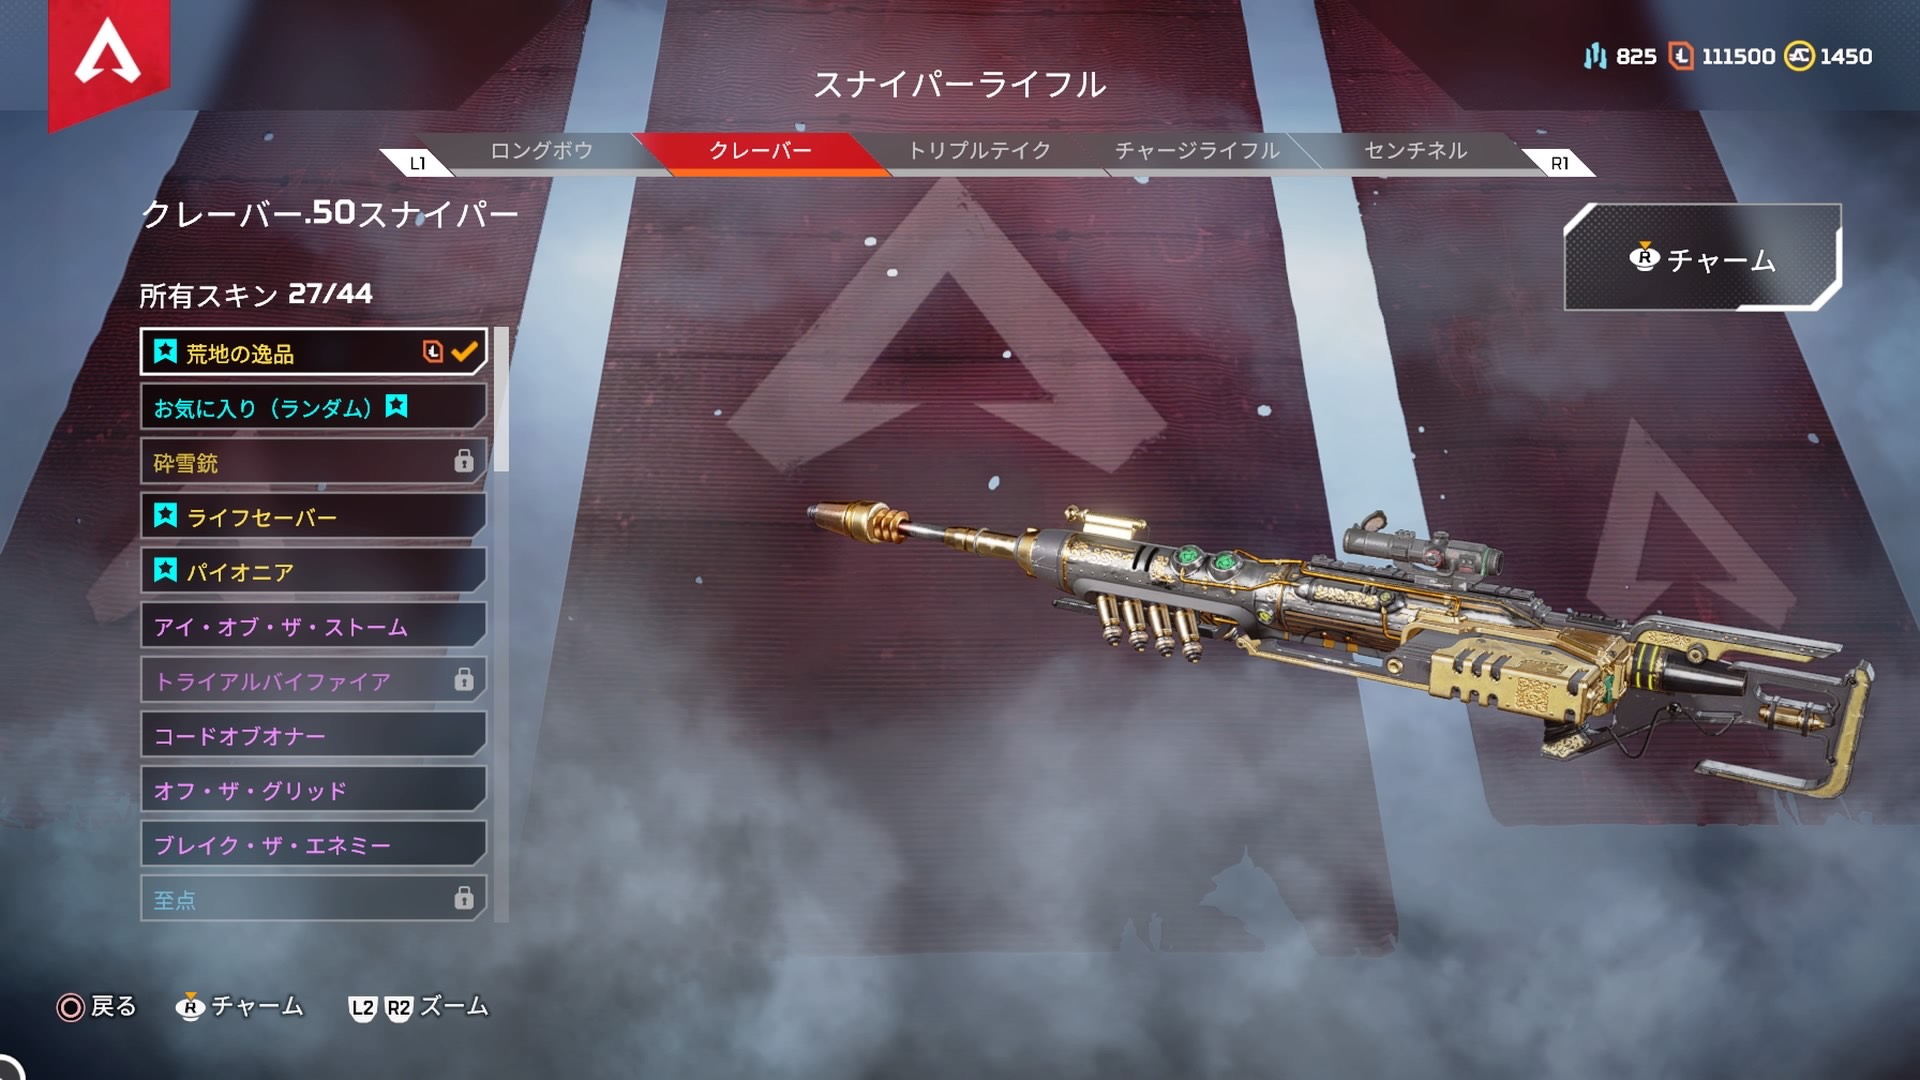 ApexLegends初心者講座武器紹介金武器編